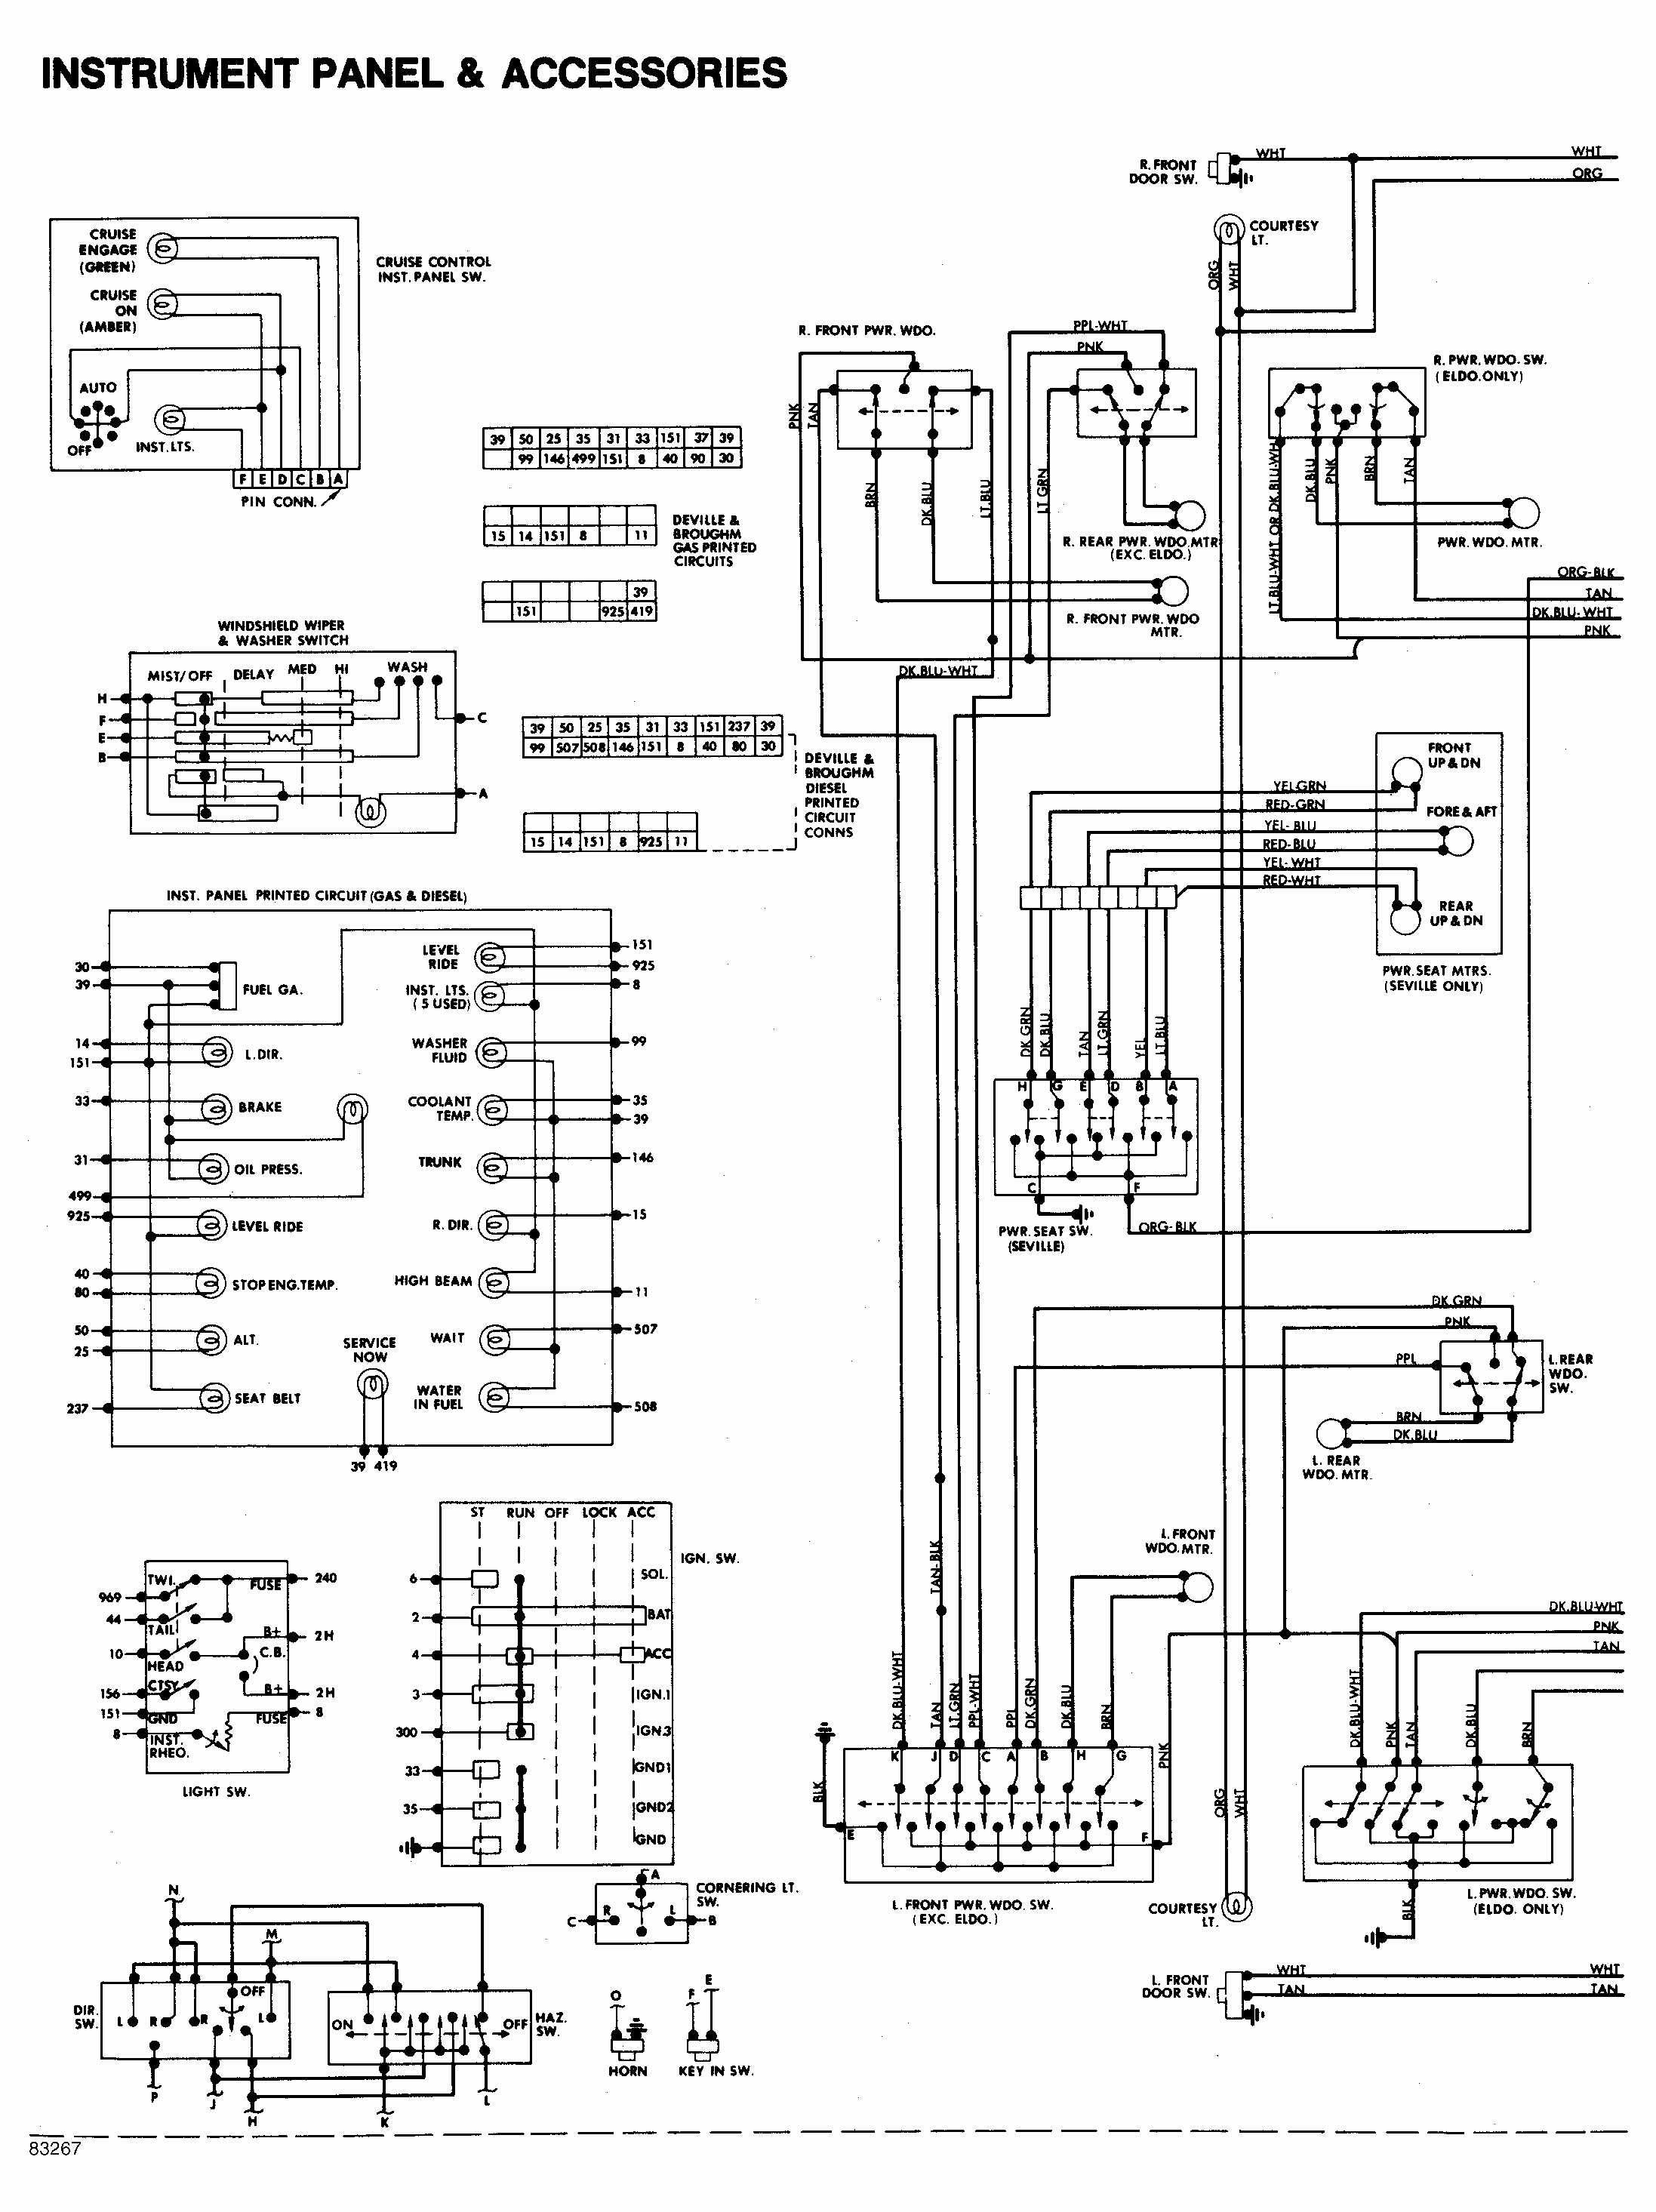 wiring diagram also fuse box wiring diagram in addition 1967 camaro